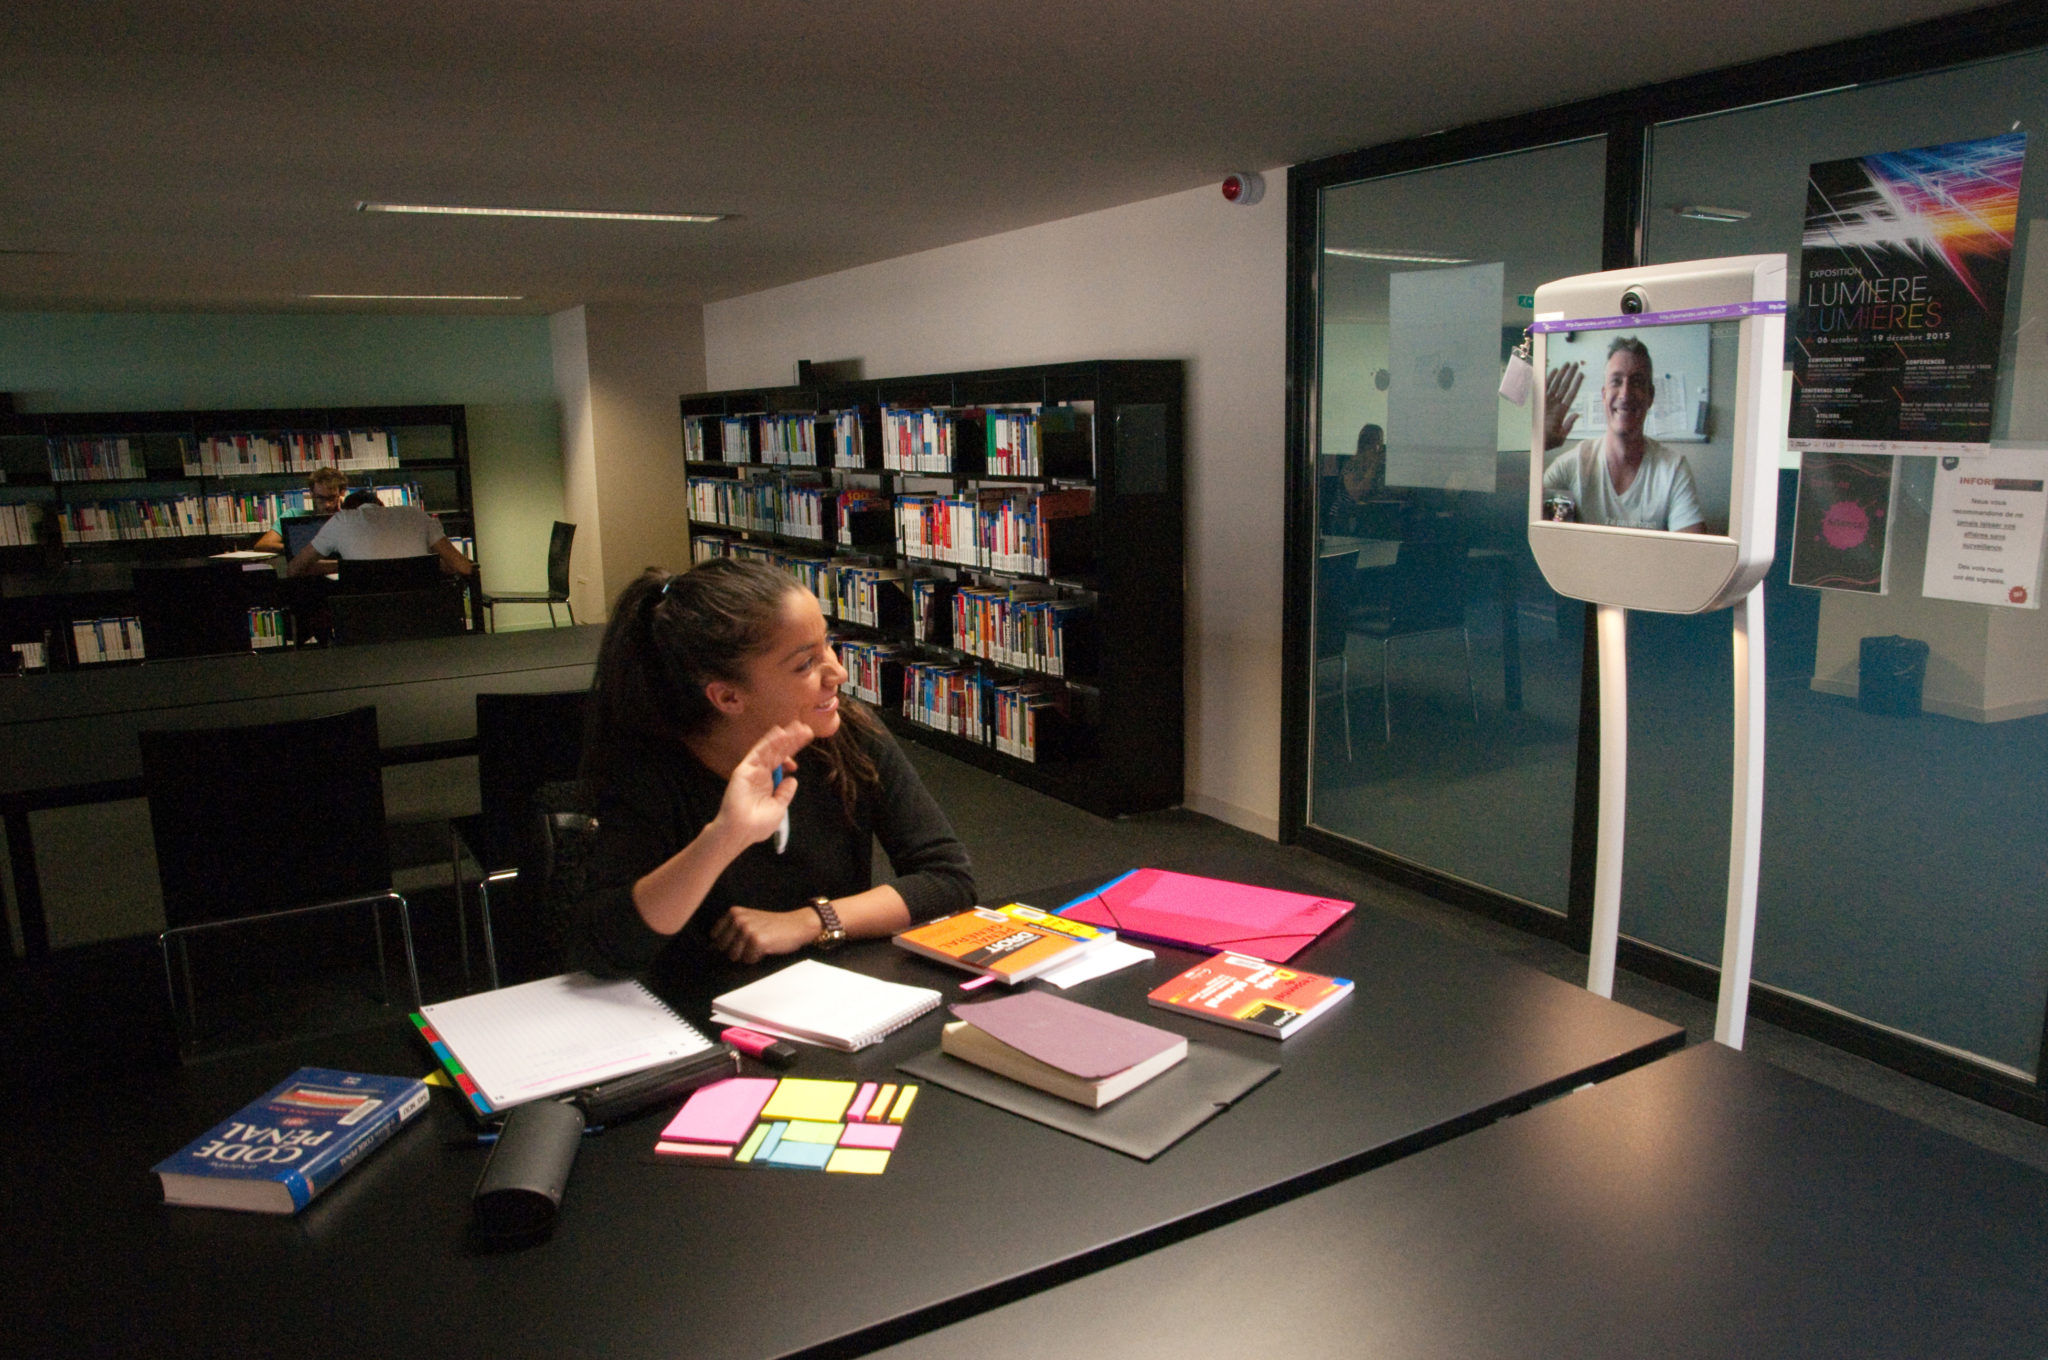 Distance teaching: mobile telepresence in the service of innovative teaching